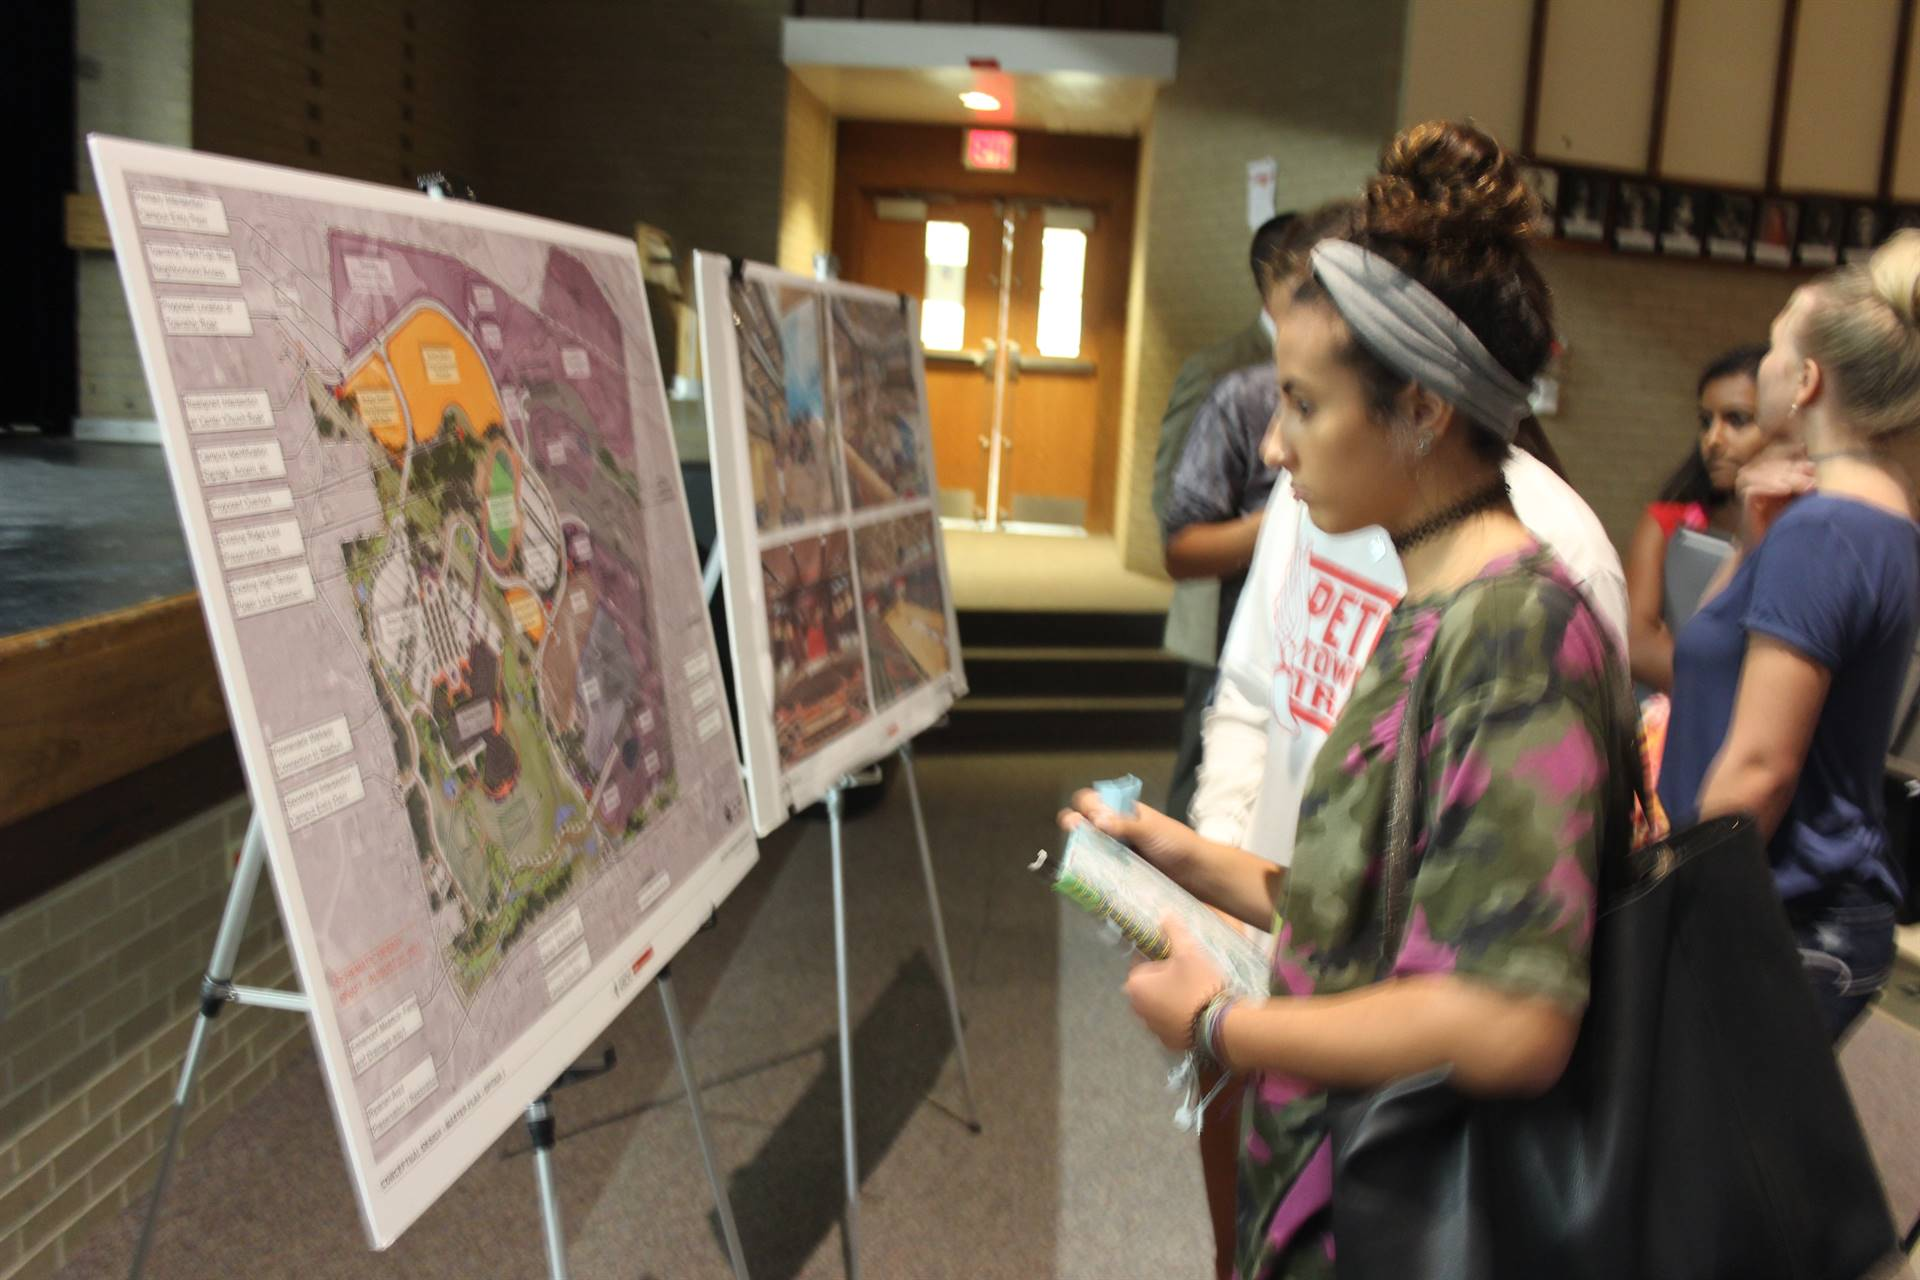 Student looks over site plan for the school.